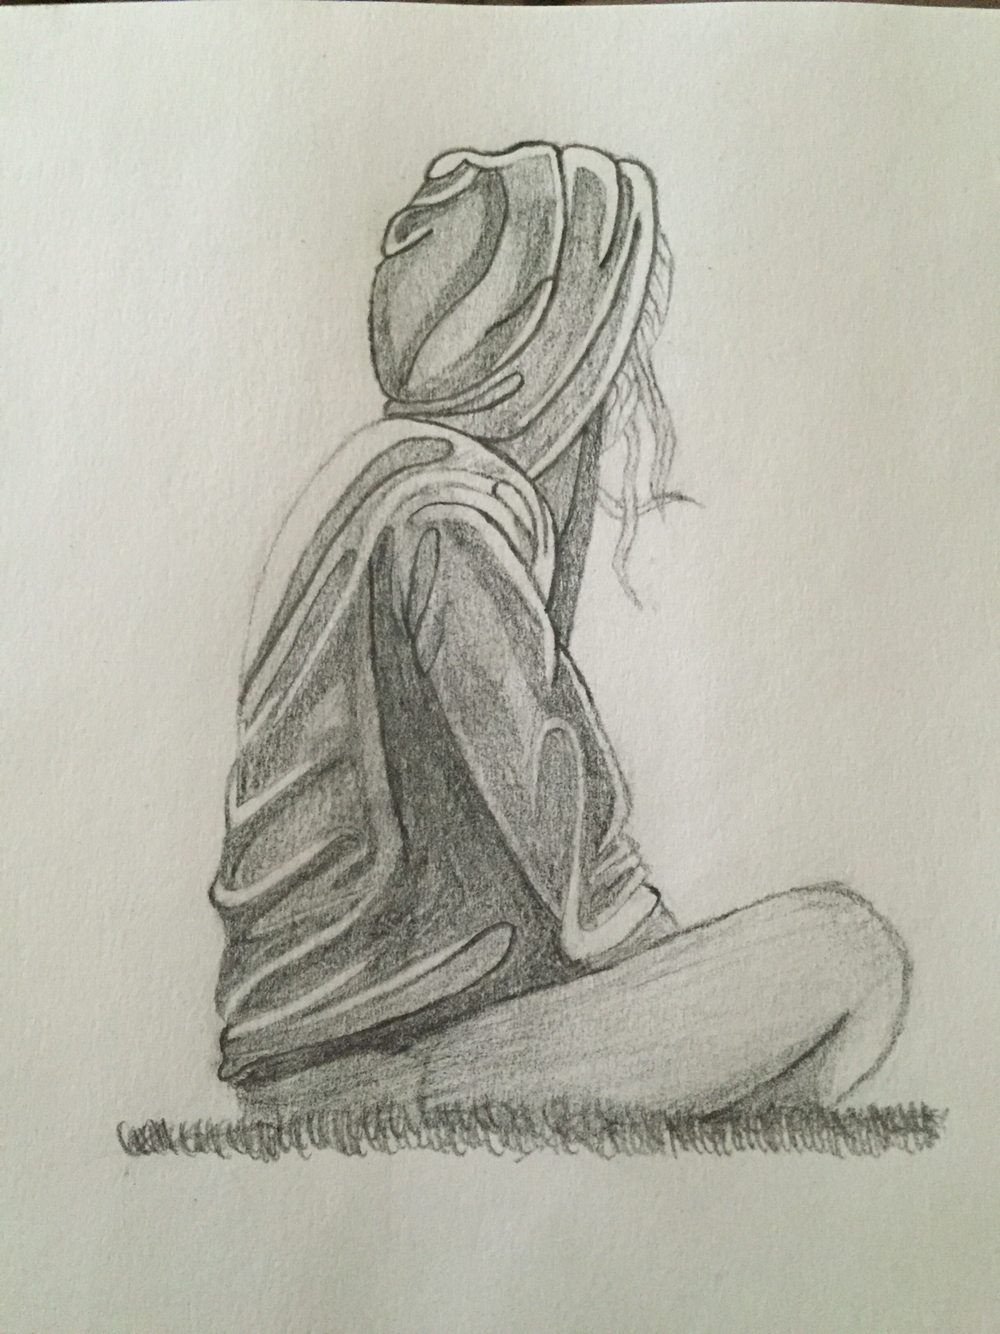 1000x1334 pencil drawing ideas for beginner side look of sad girl pencil